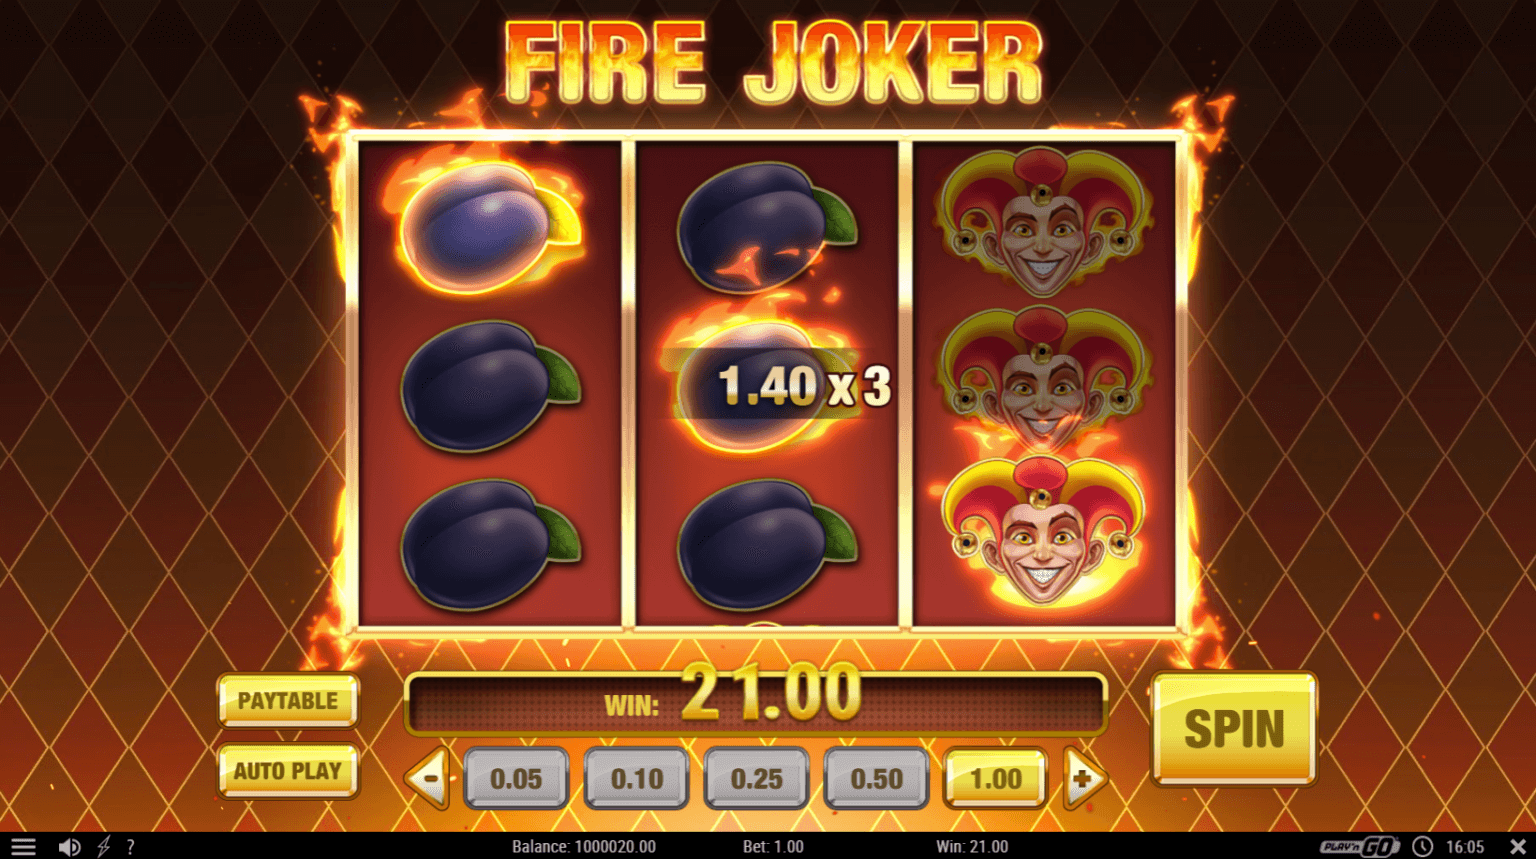 Fire Joker is a three reel slot with five fixed paylines